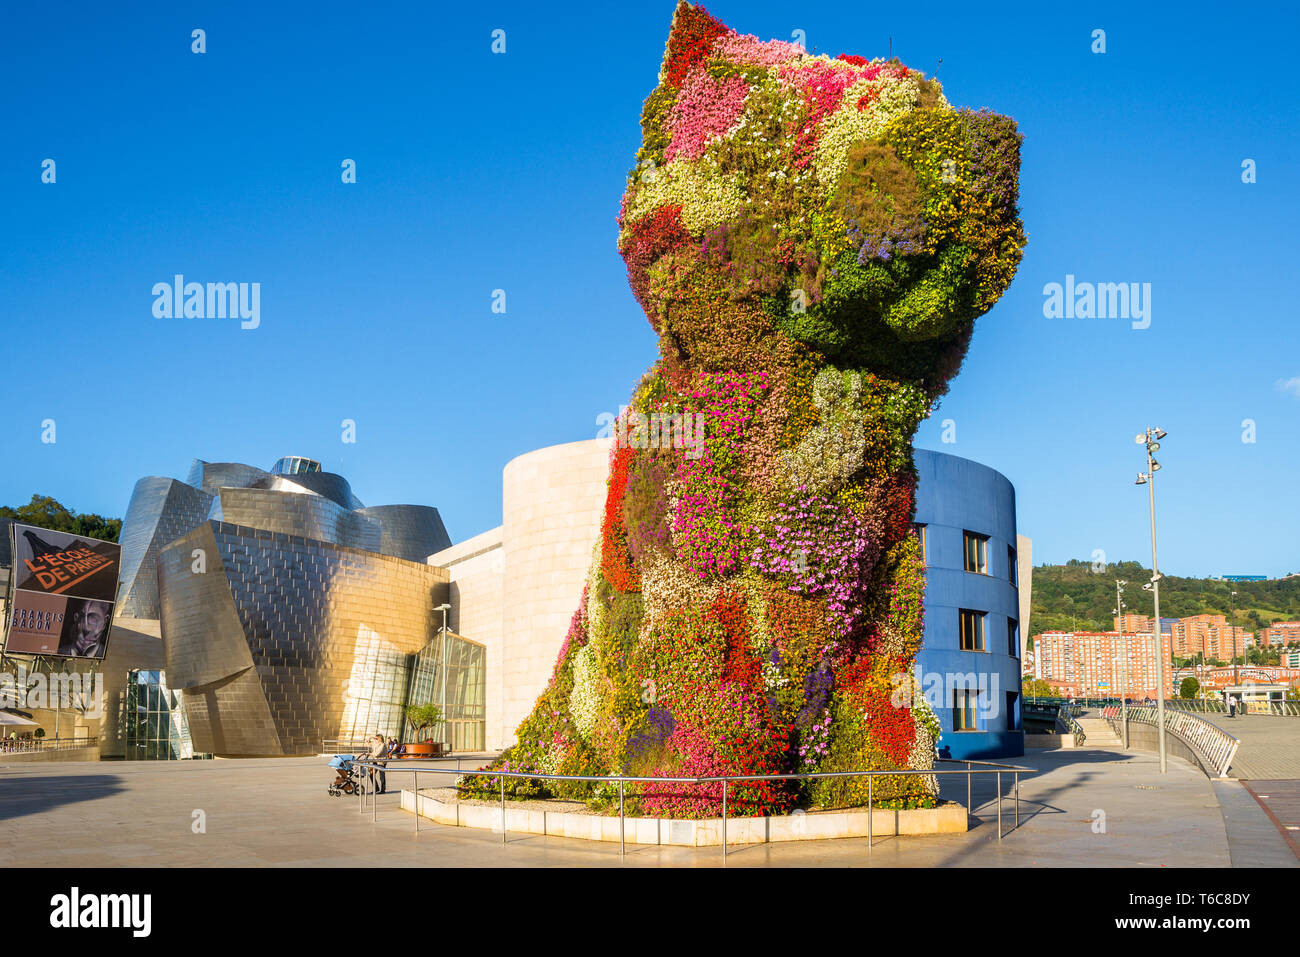 Dog from flowers in the mid town of Bilbao Stock Photo